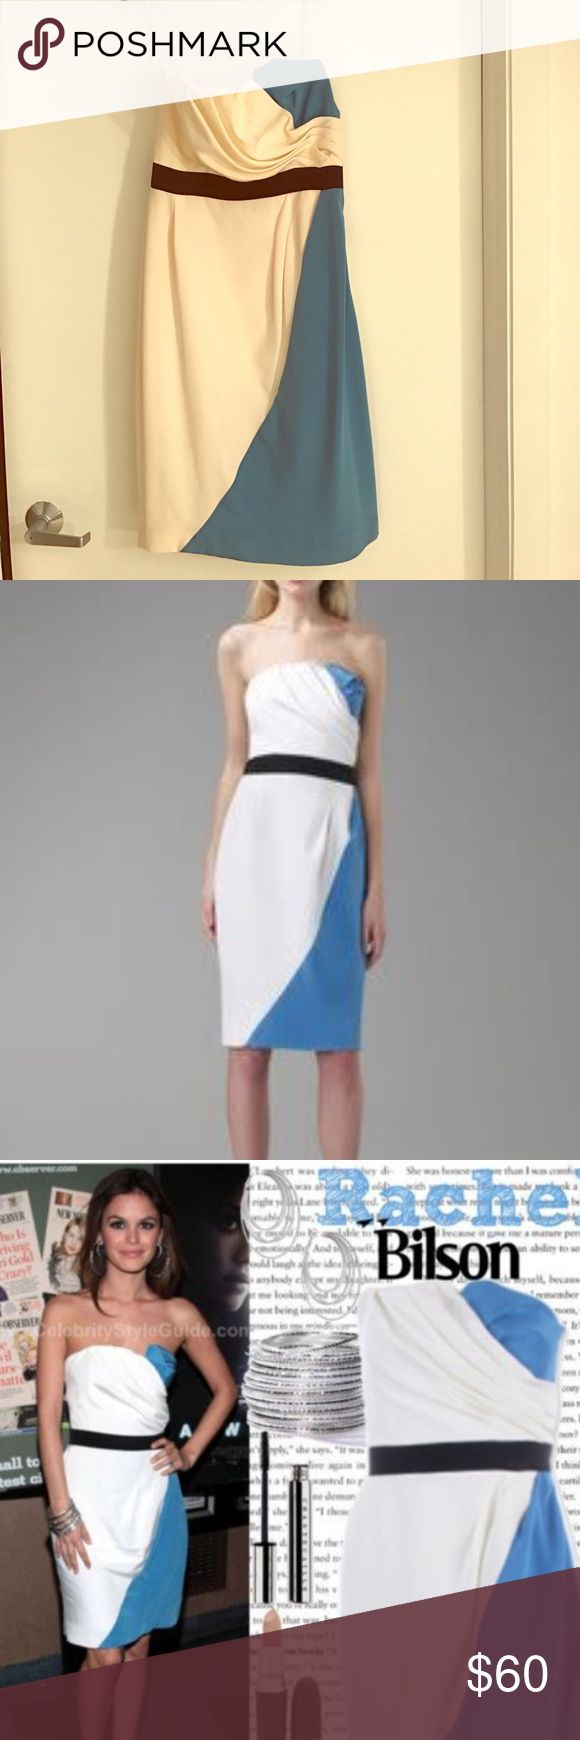 Abaete strapless color block dress! Strapless colorblock dress, as seen on Rachel Wilson! Worn once! Abaete Dresses Strapless